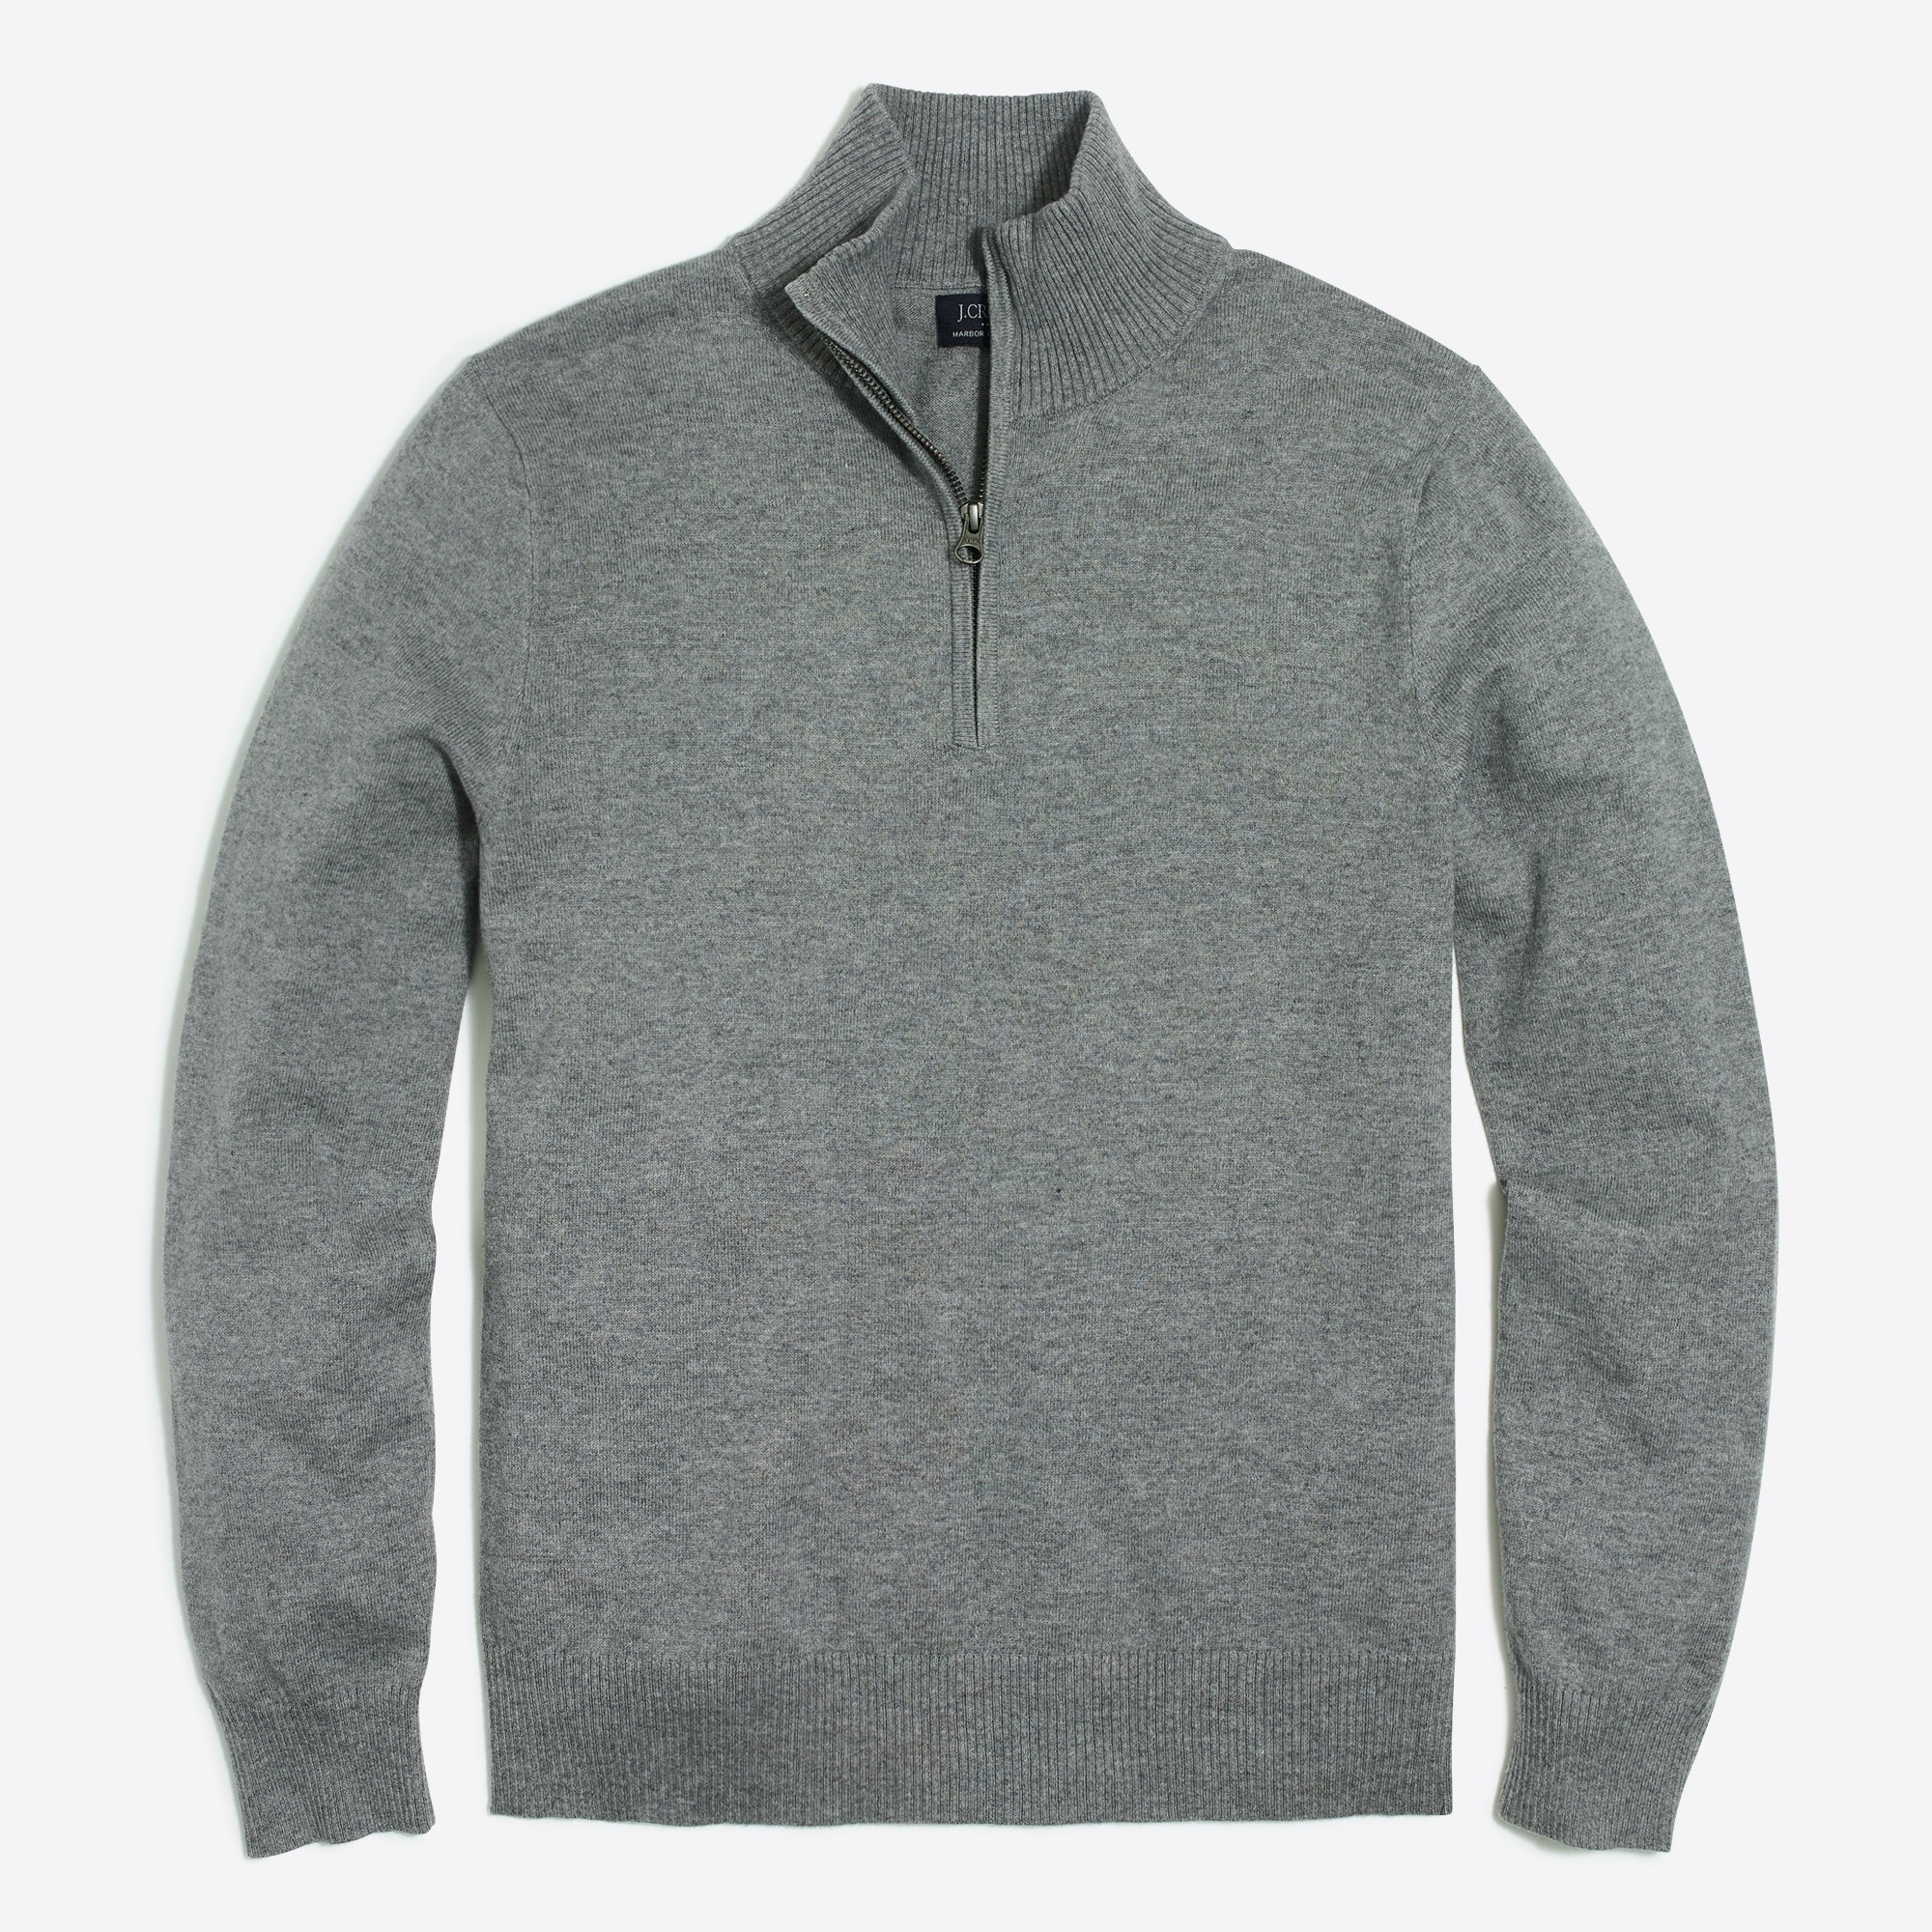 Image 3 for Tall harbor cotton half-zip sweater